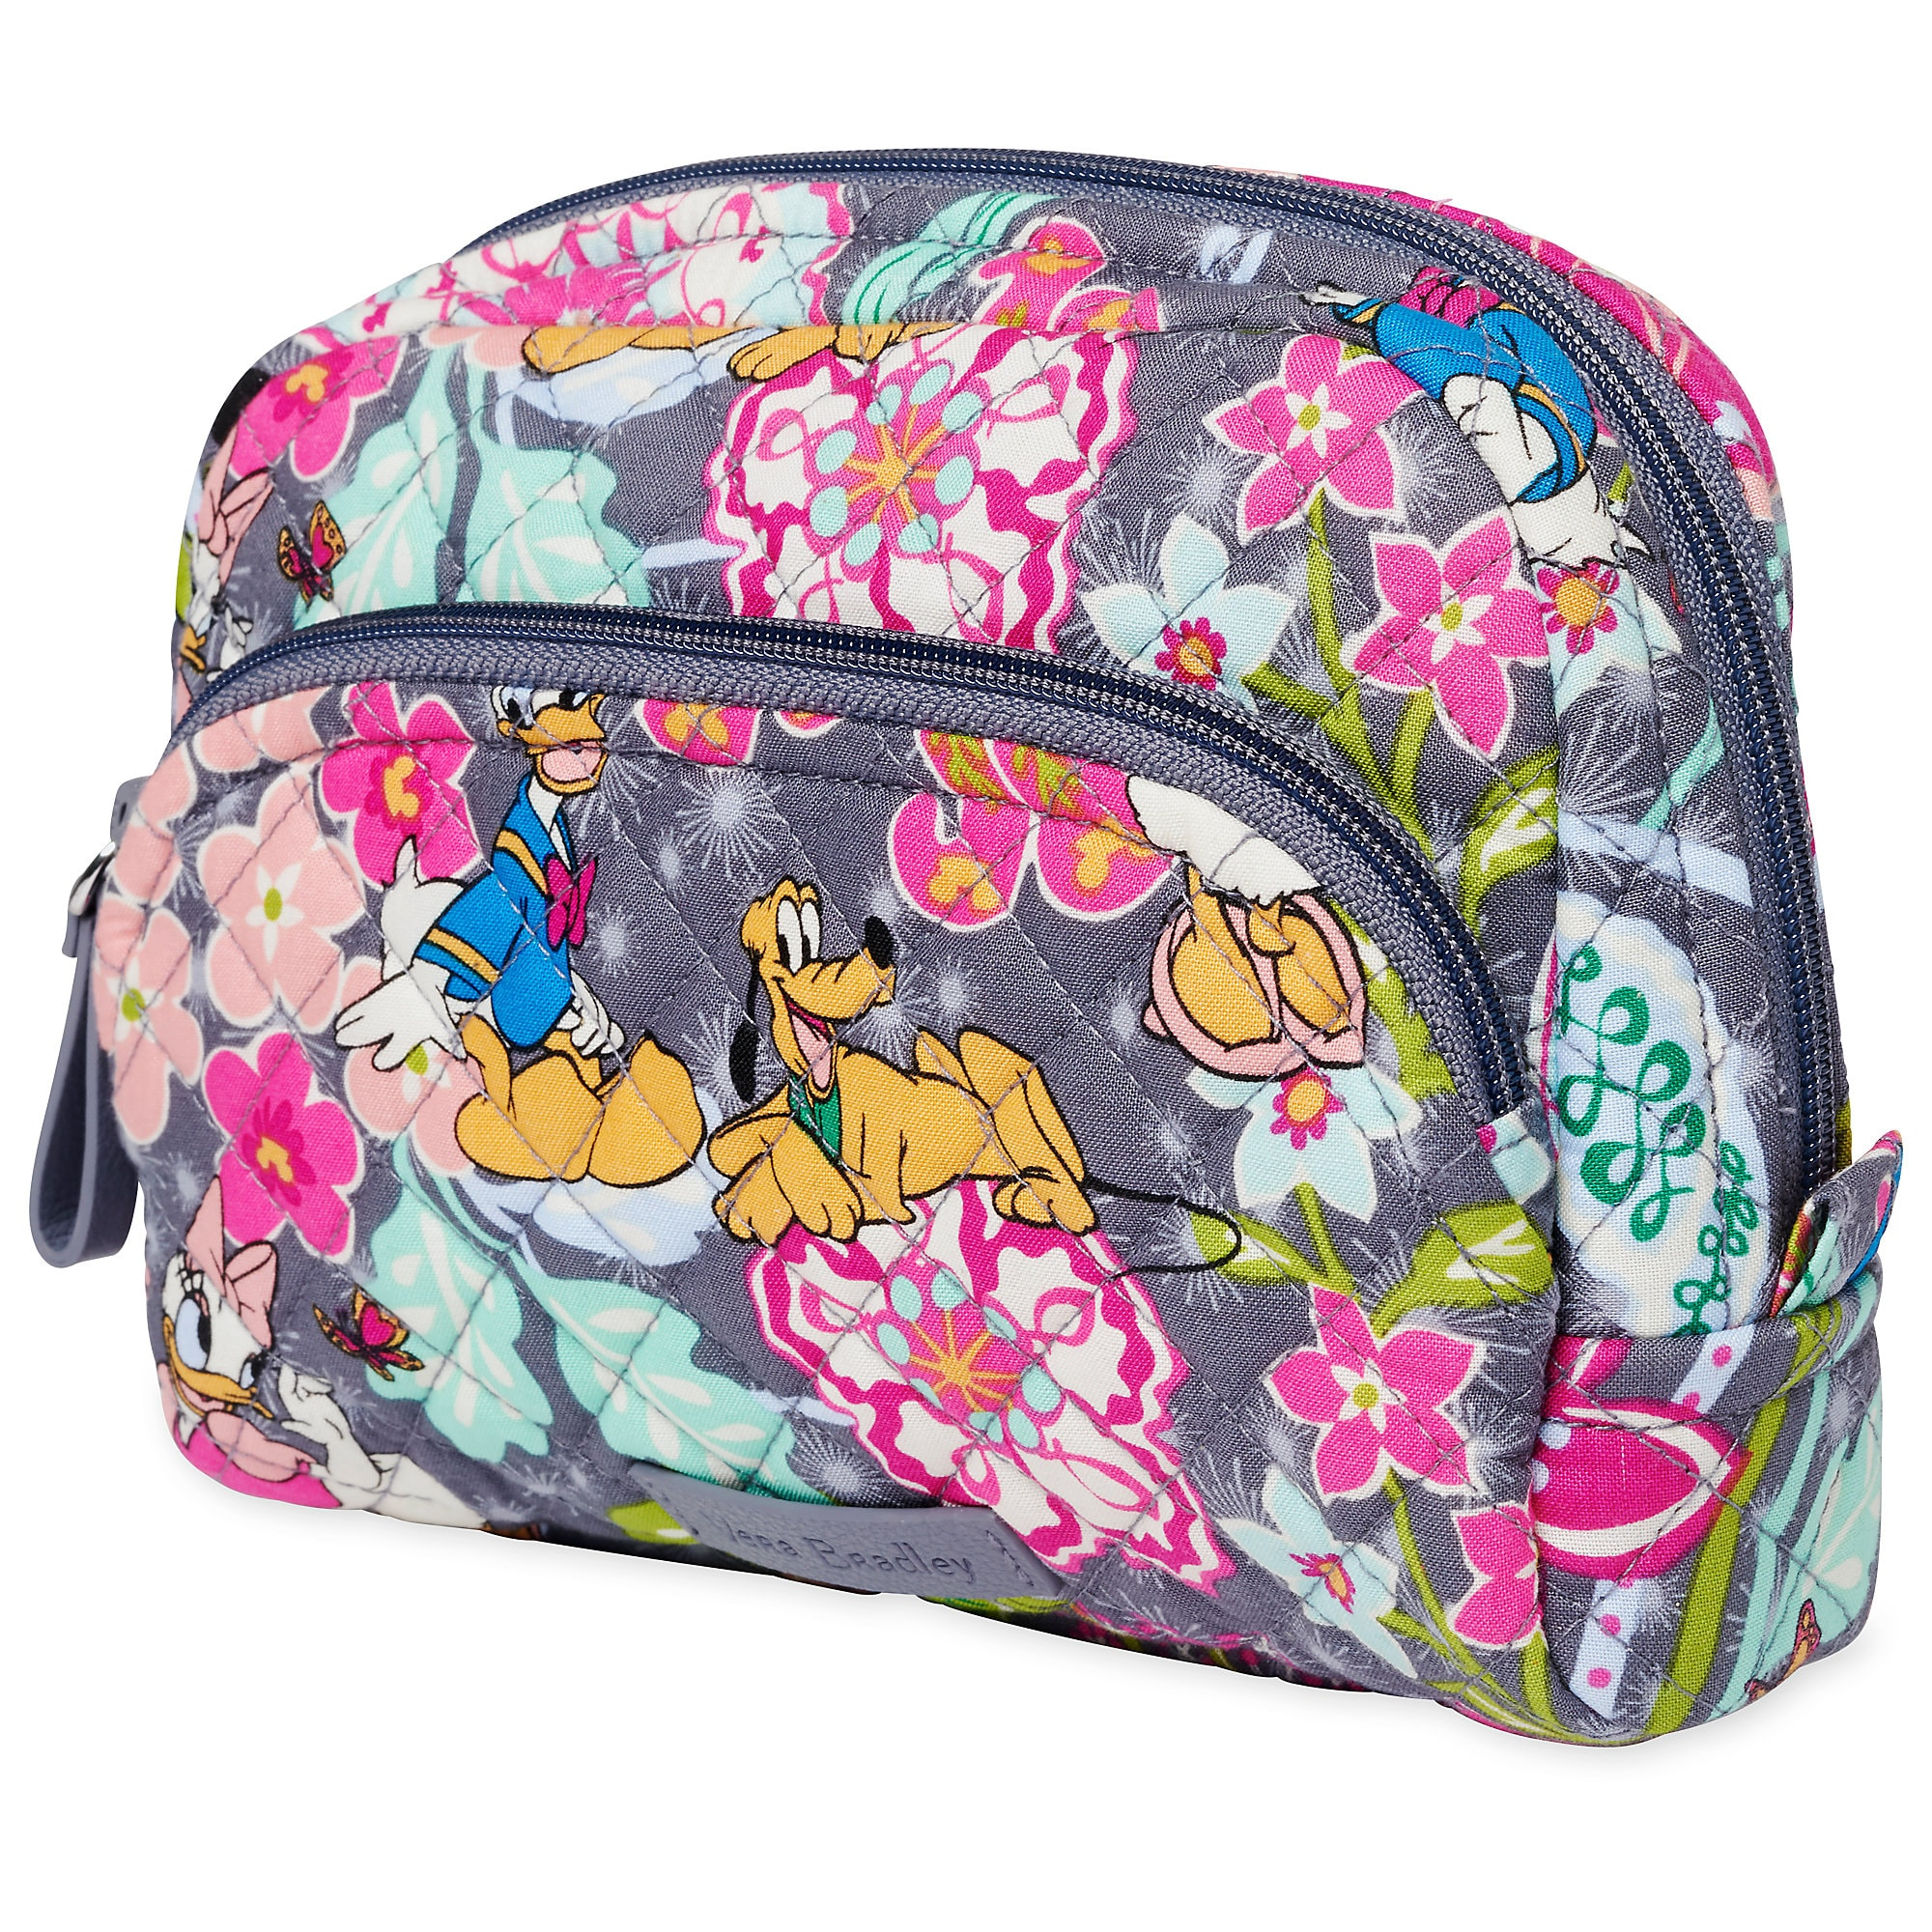 Mickey Mouse and Friends Medium Cosmetic Bag by Vera Bradley